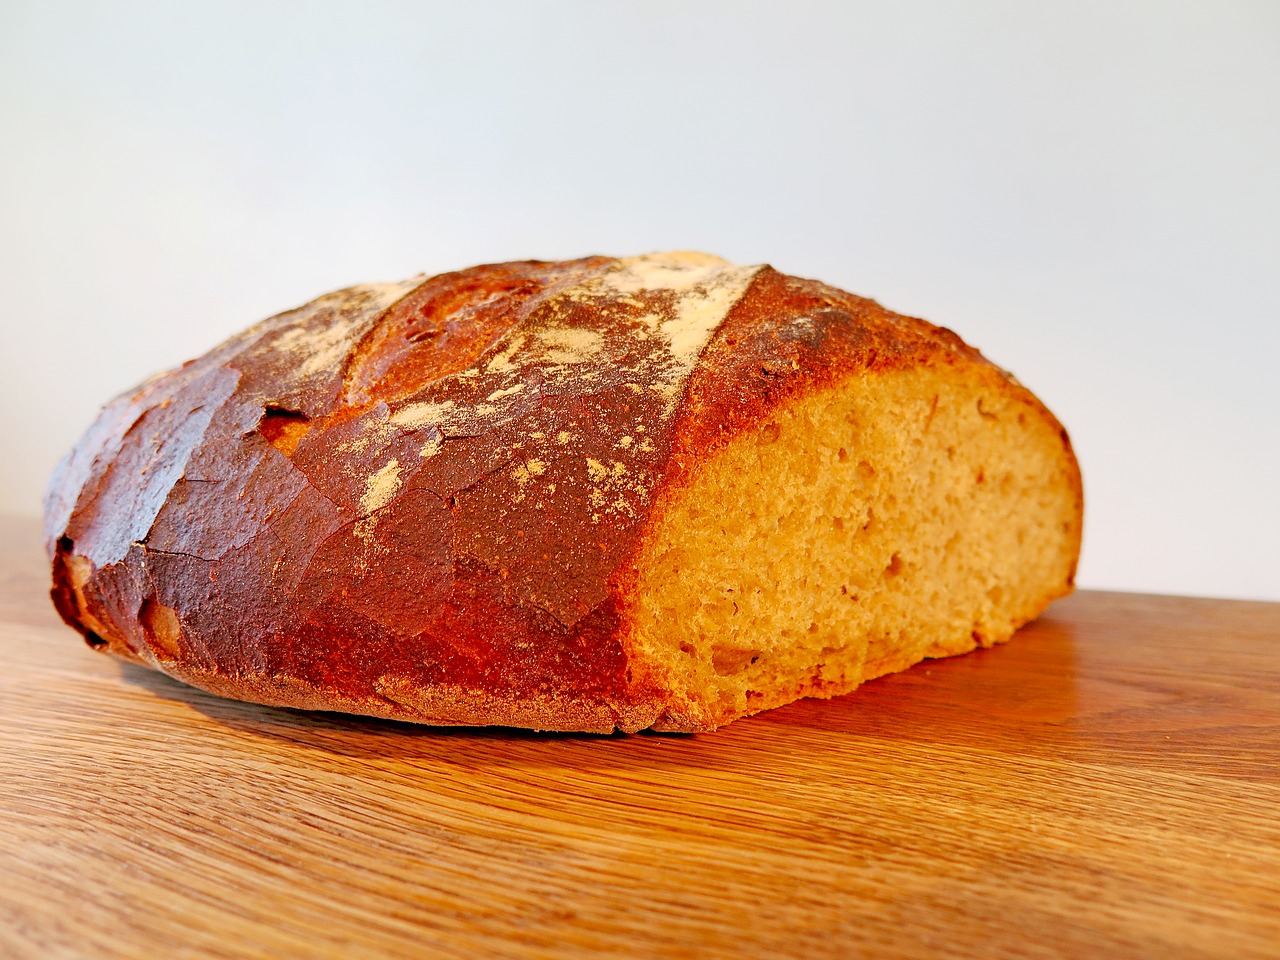 Introduction To Today's Bread Makers